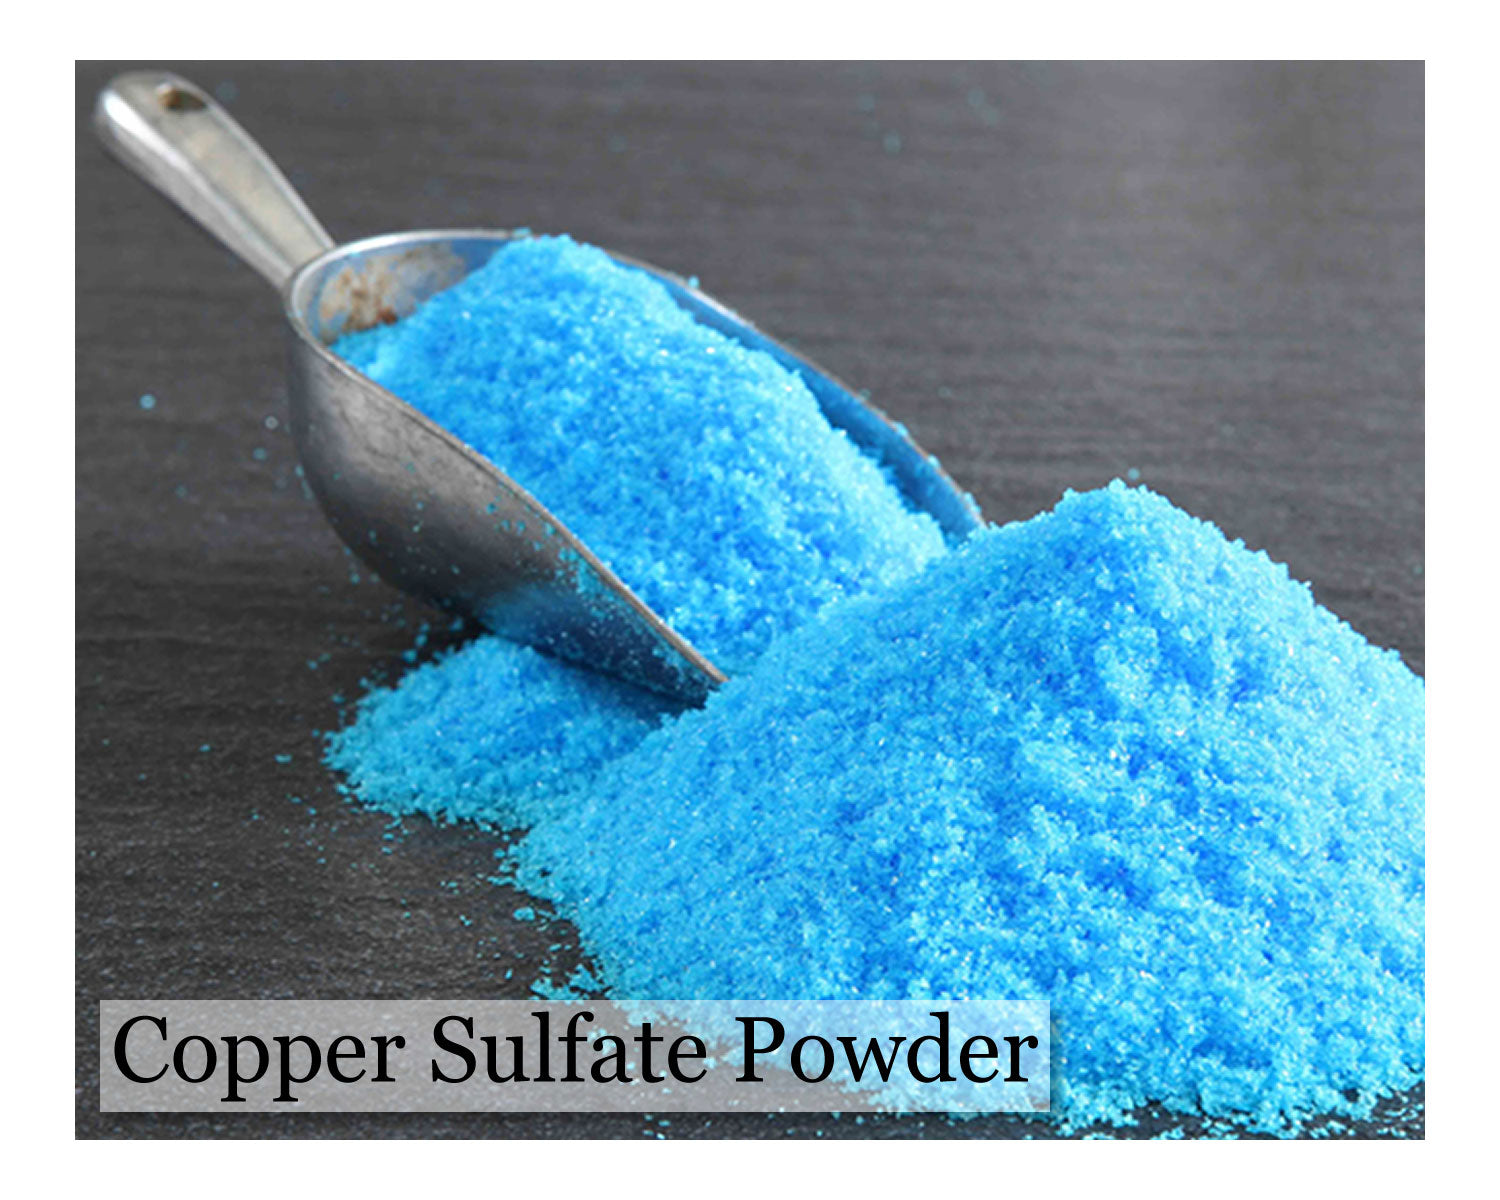 Copper Sulfate Powder - 2 oz